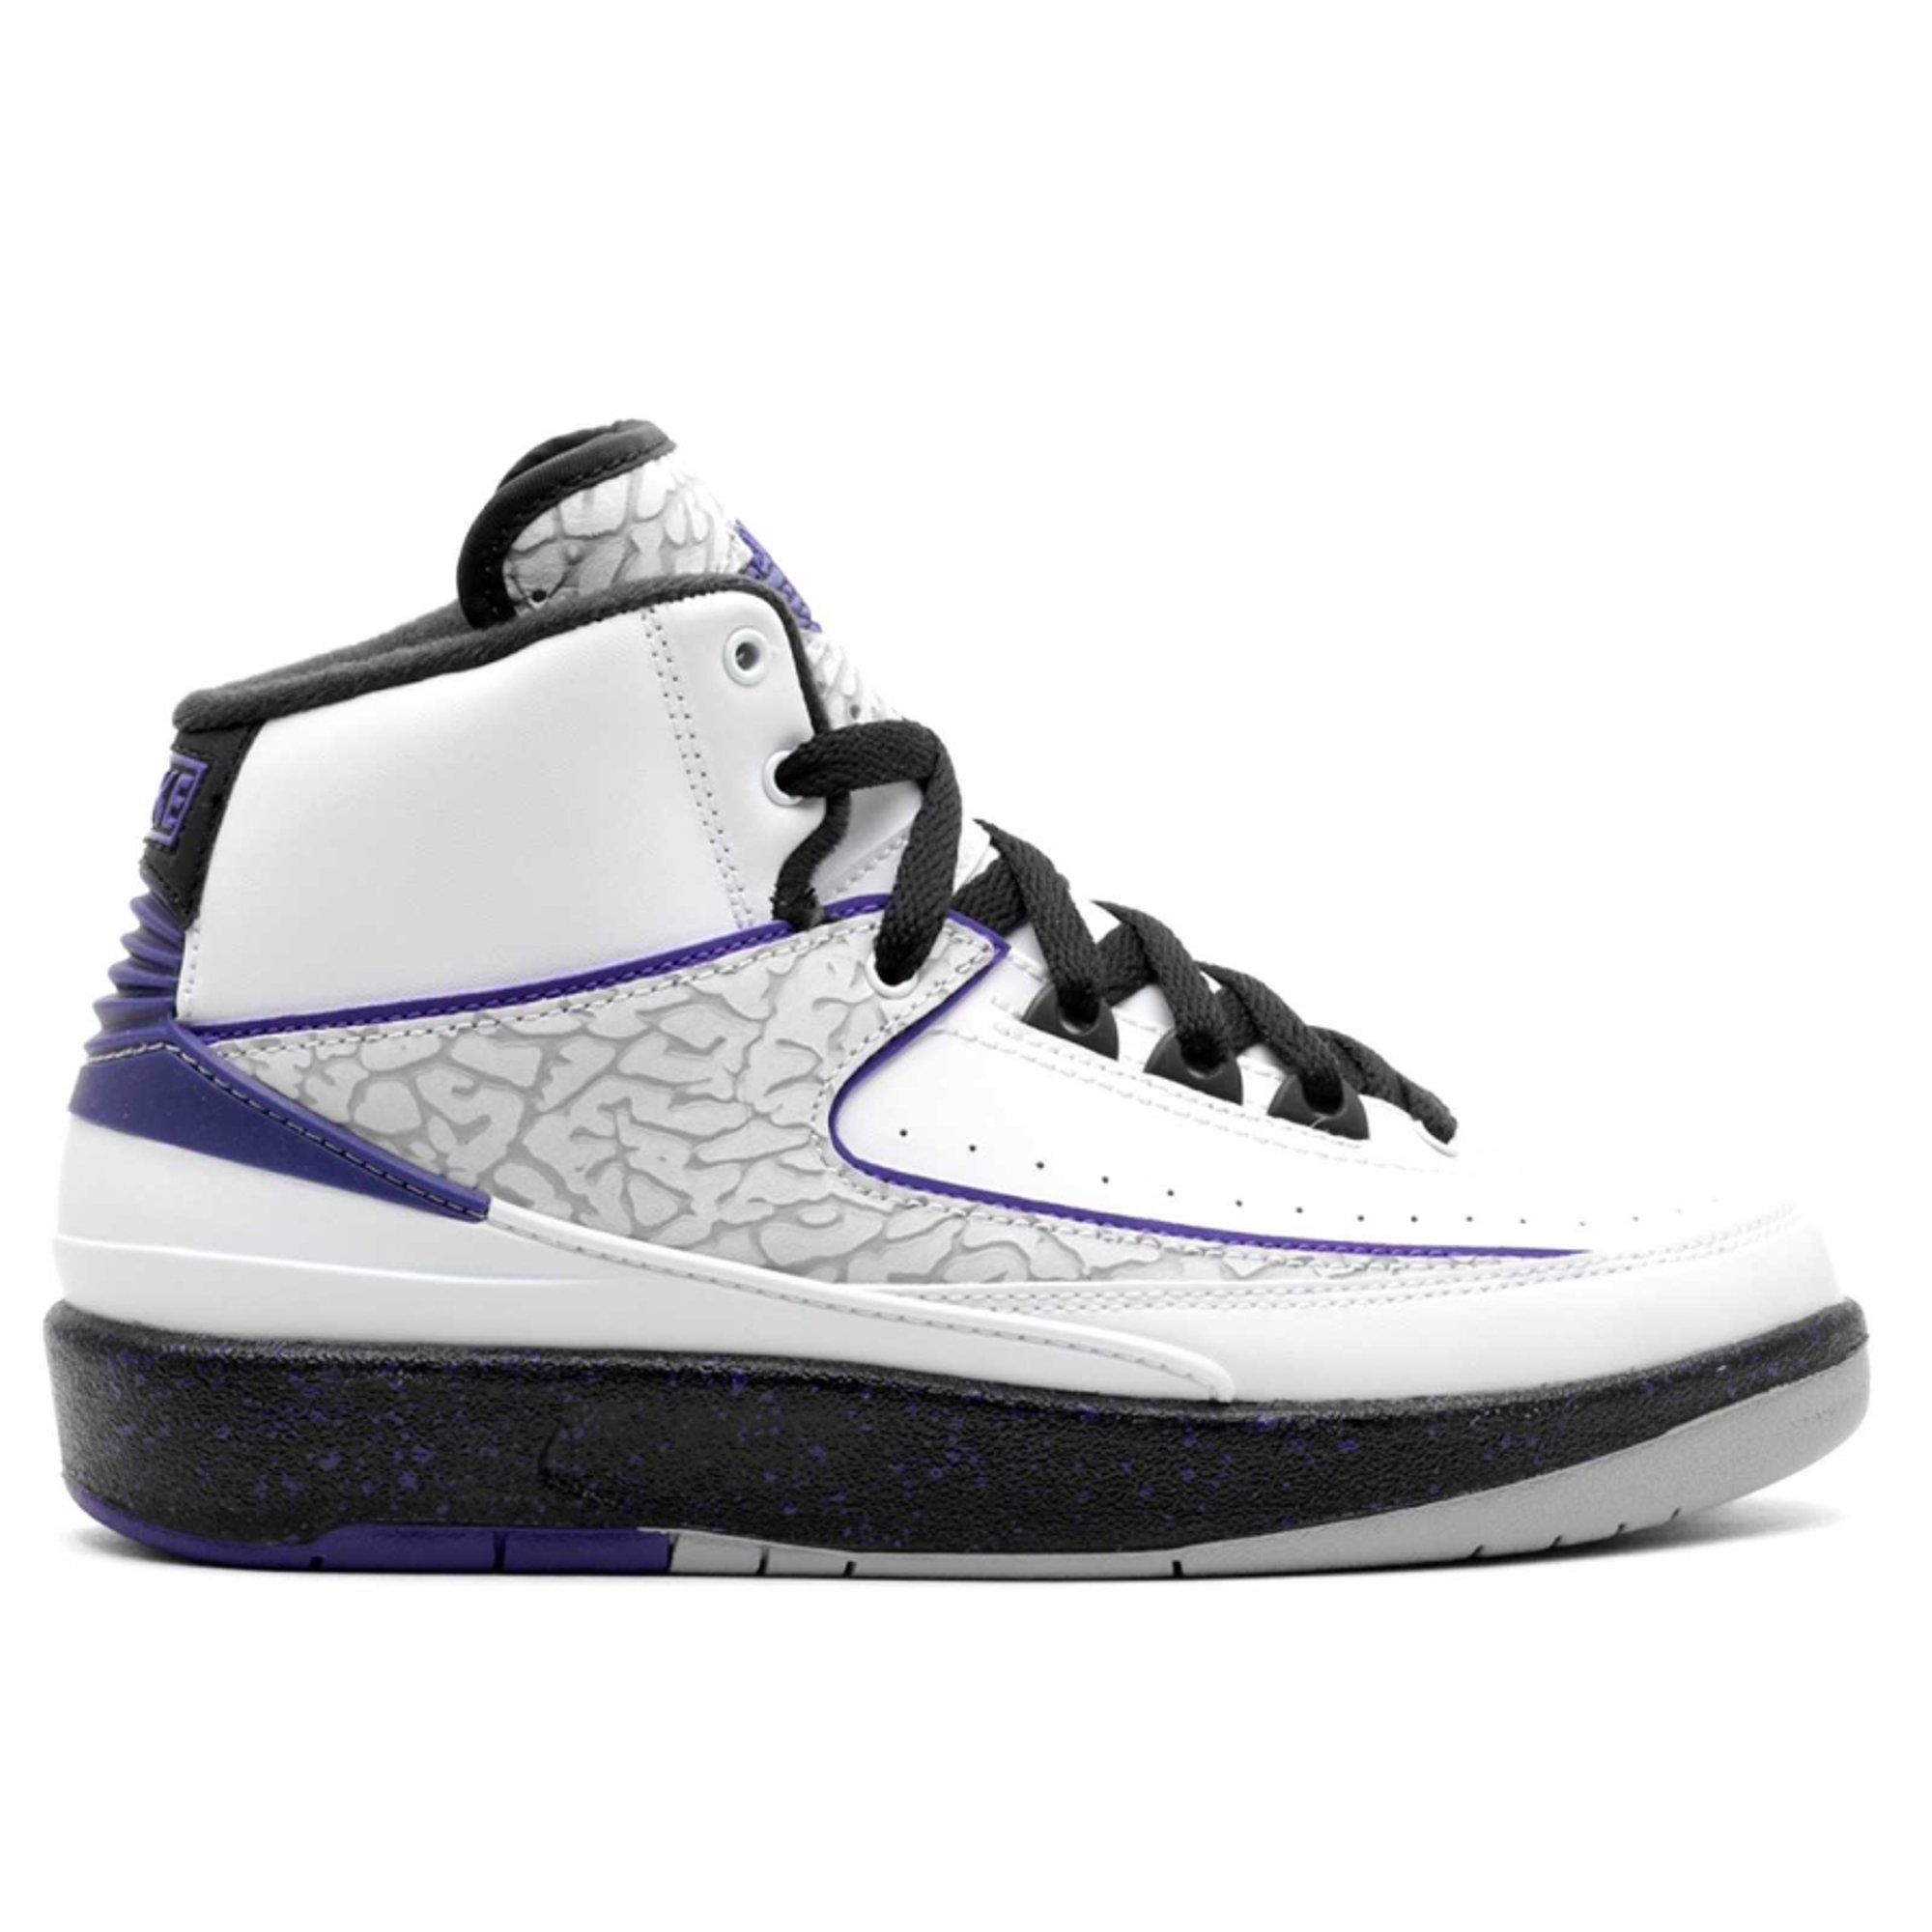 detailed look ed2a2 230de Air Jordan - Unisex - Air Jordan 2 Retro Bg (Gs) 'Concord' - 395718-153 -  Size 4.5